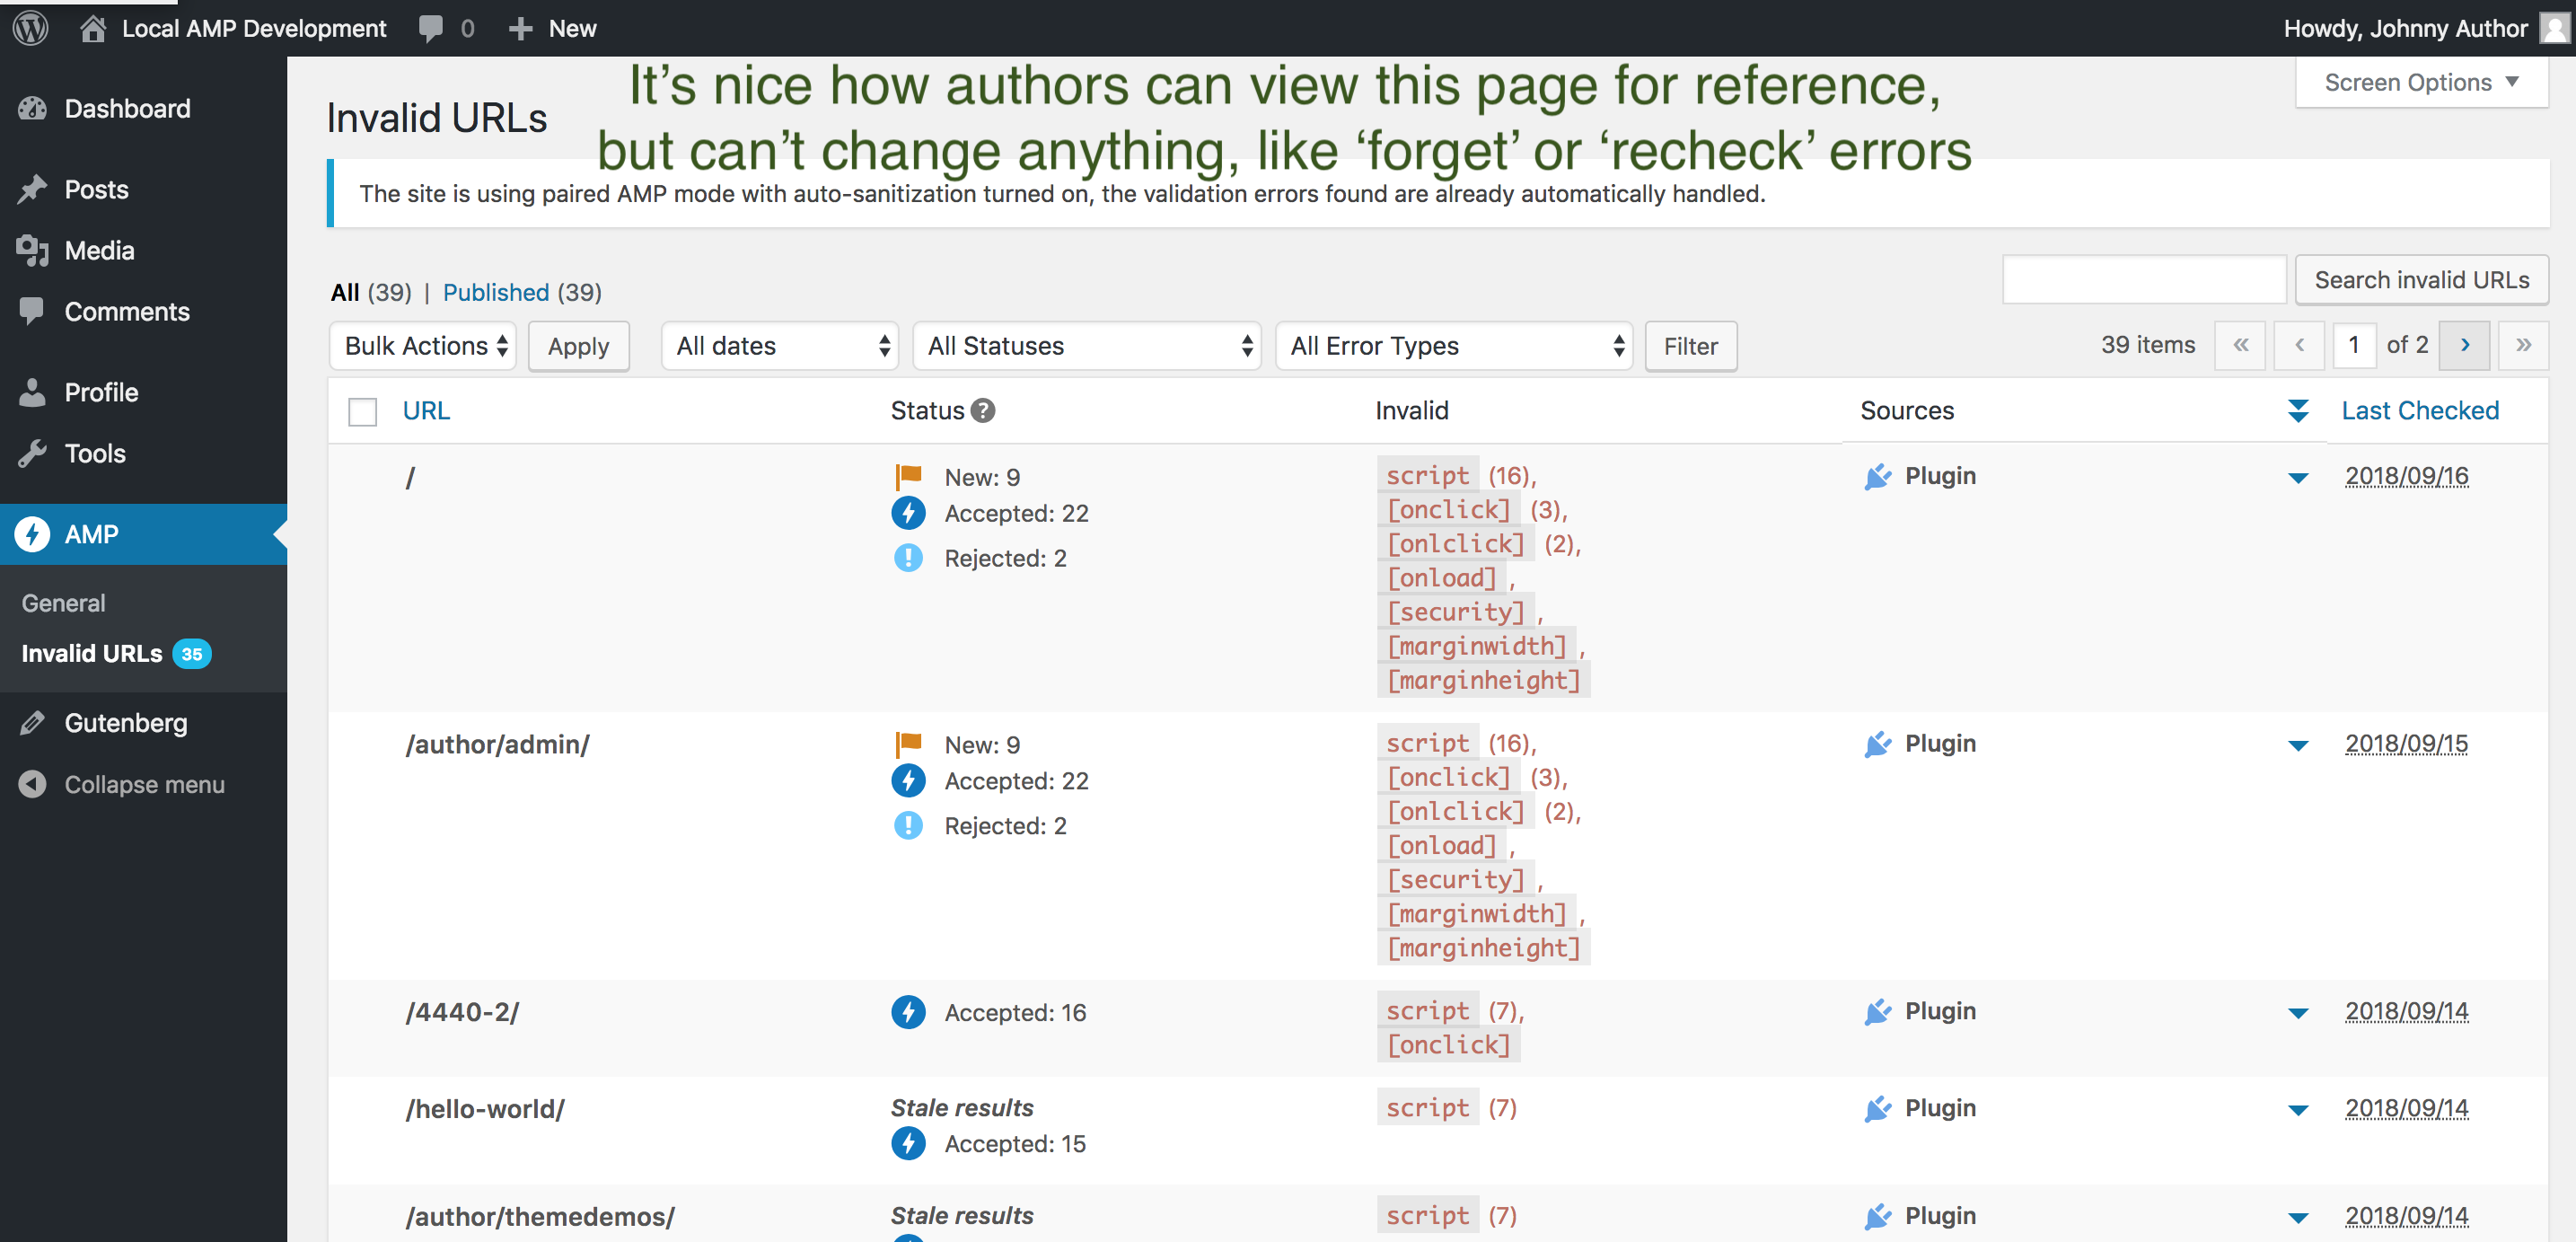 authors-view-page